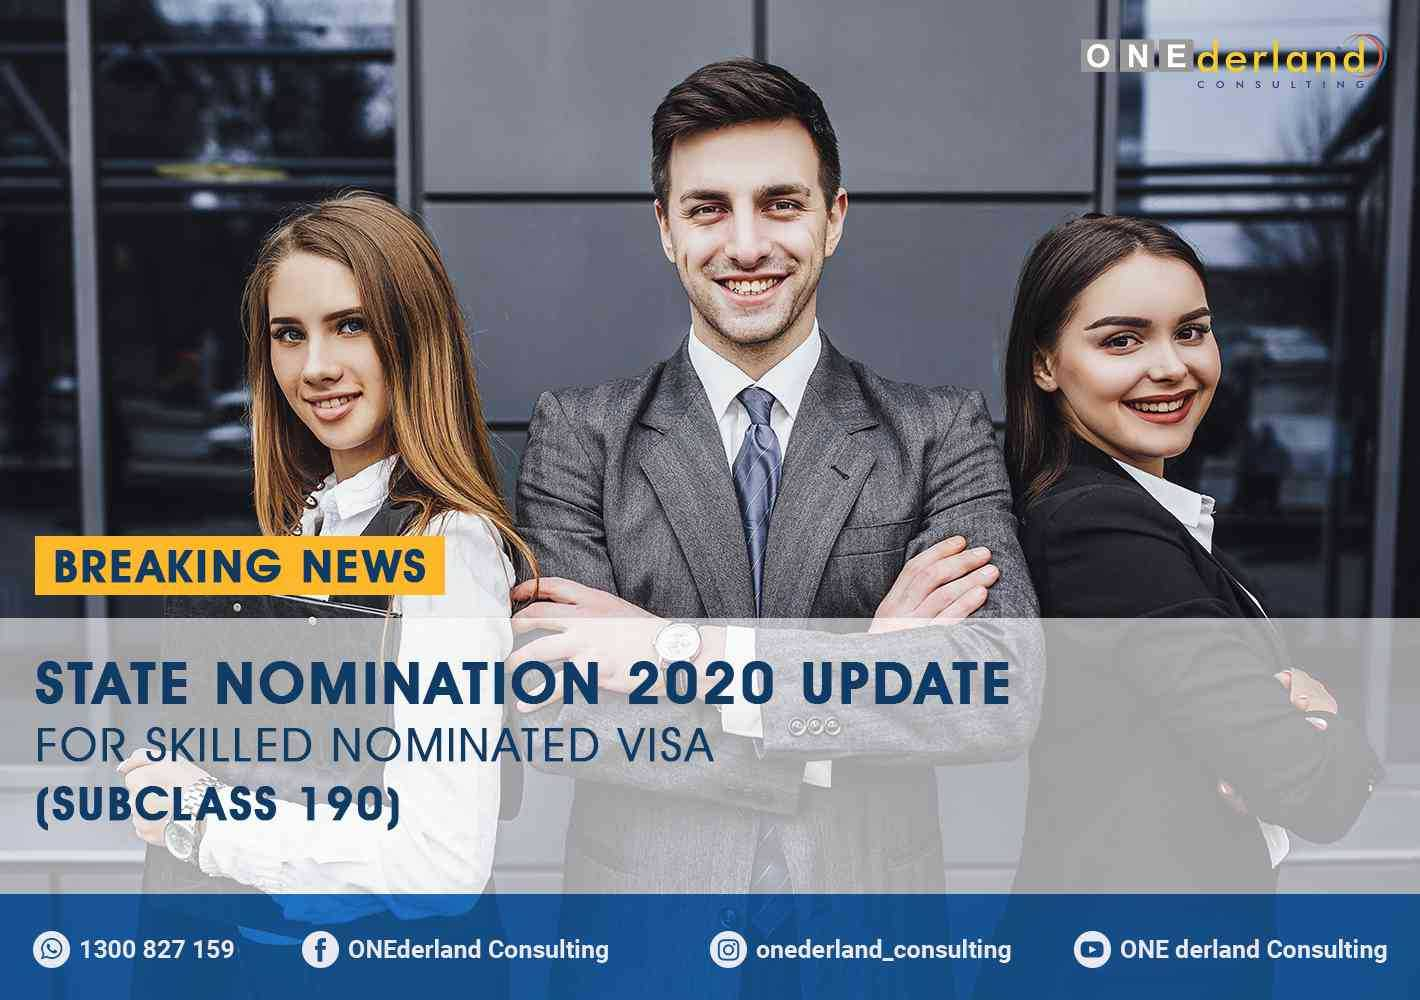 State Nomination 2020 Update for Skilled Nominated Visa (Subclass 190)